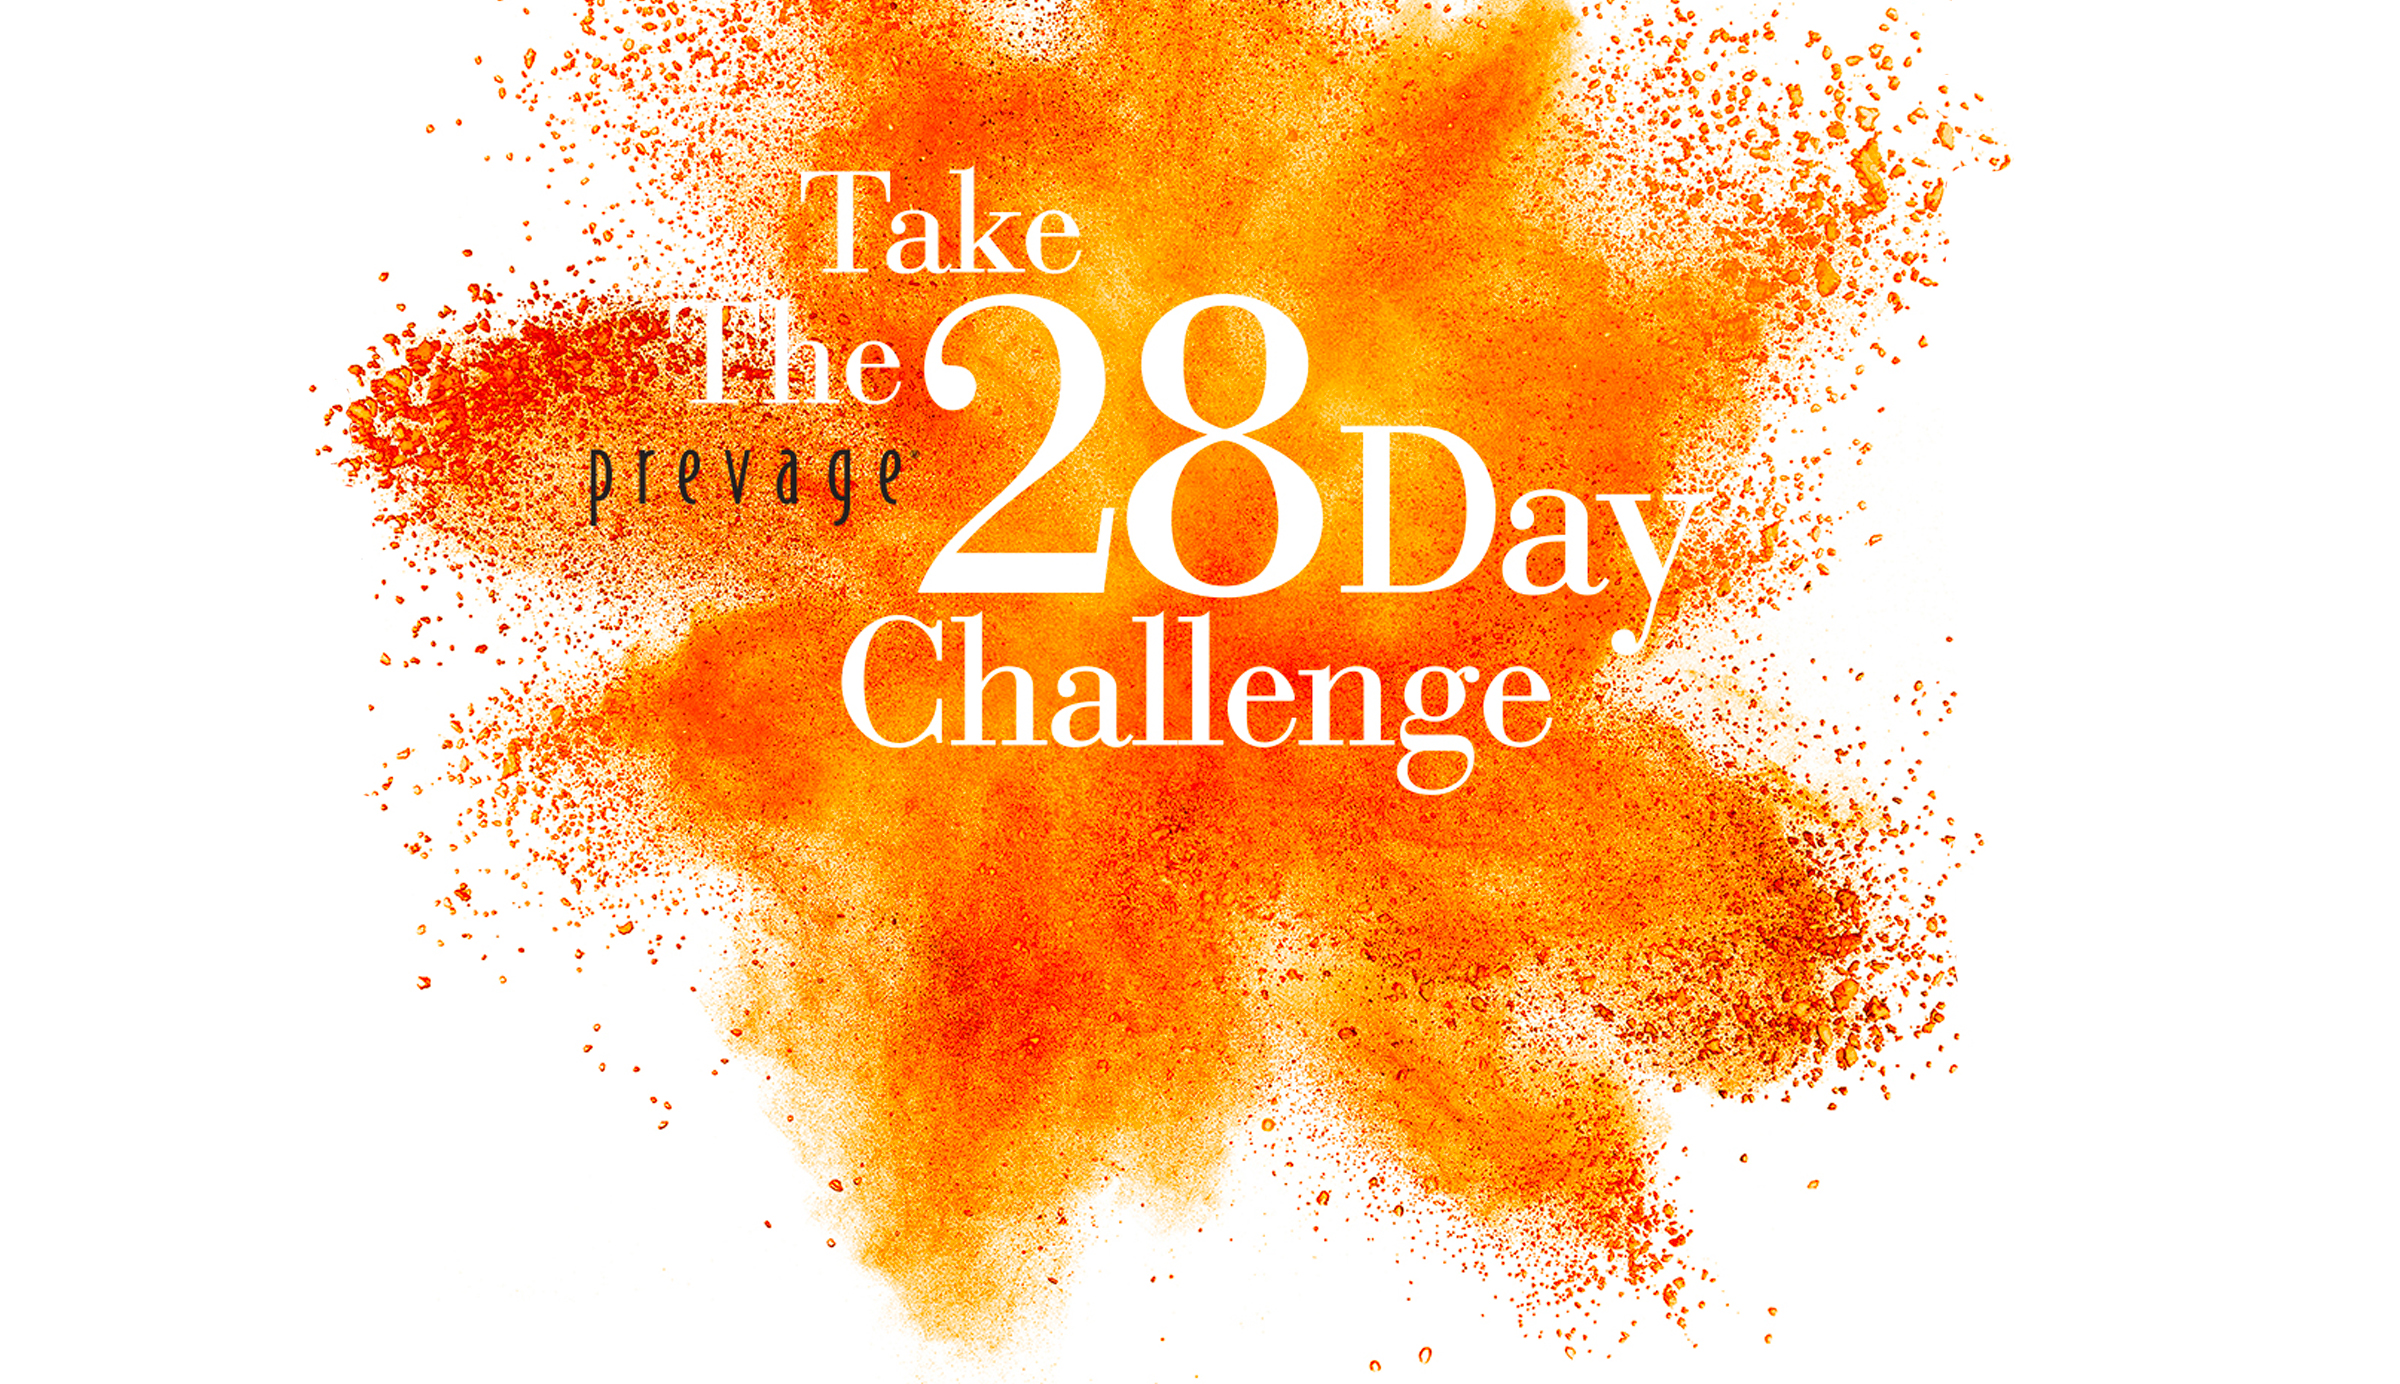 Prevage 28 Day Challenge